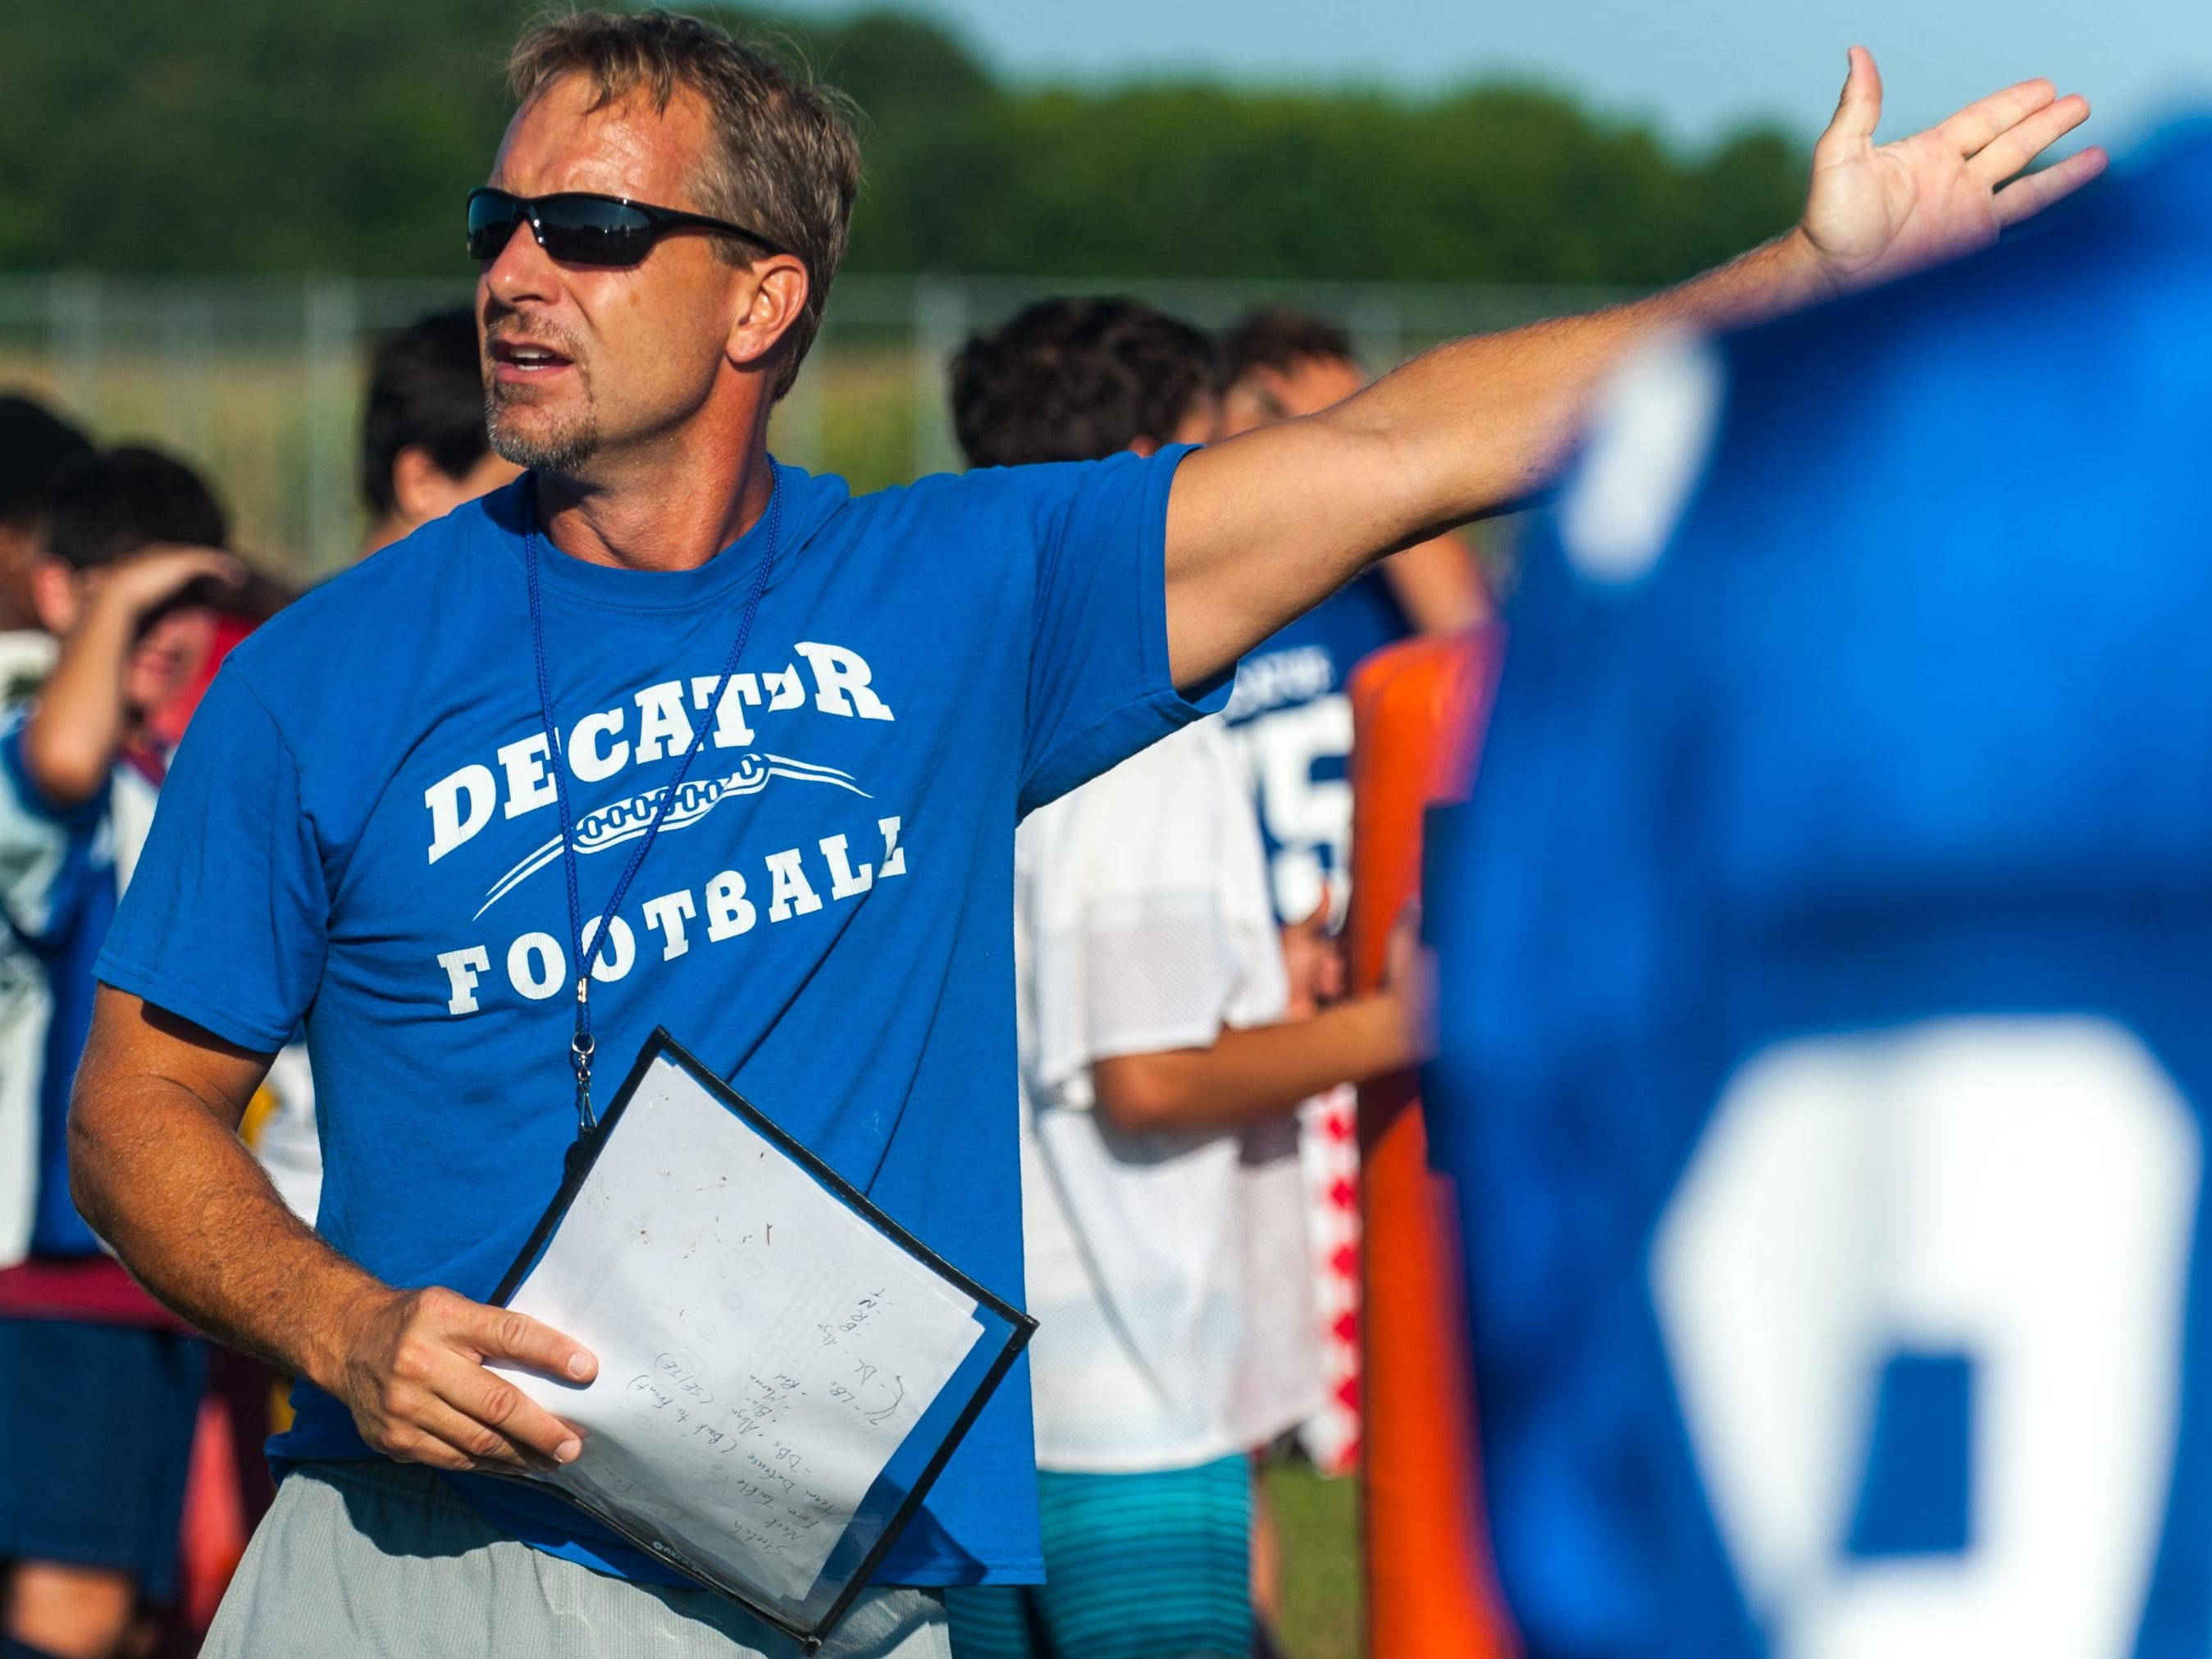 Stephen Decaur defensive coordinator Stan Griffin explains defensive formations on Friday morning in Berlin.